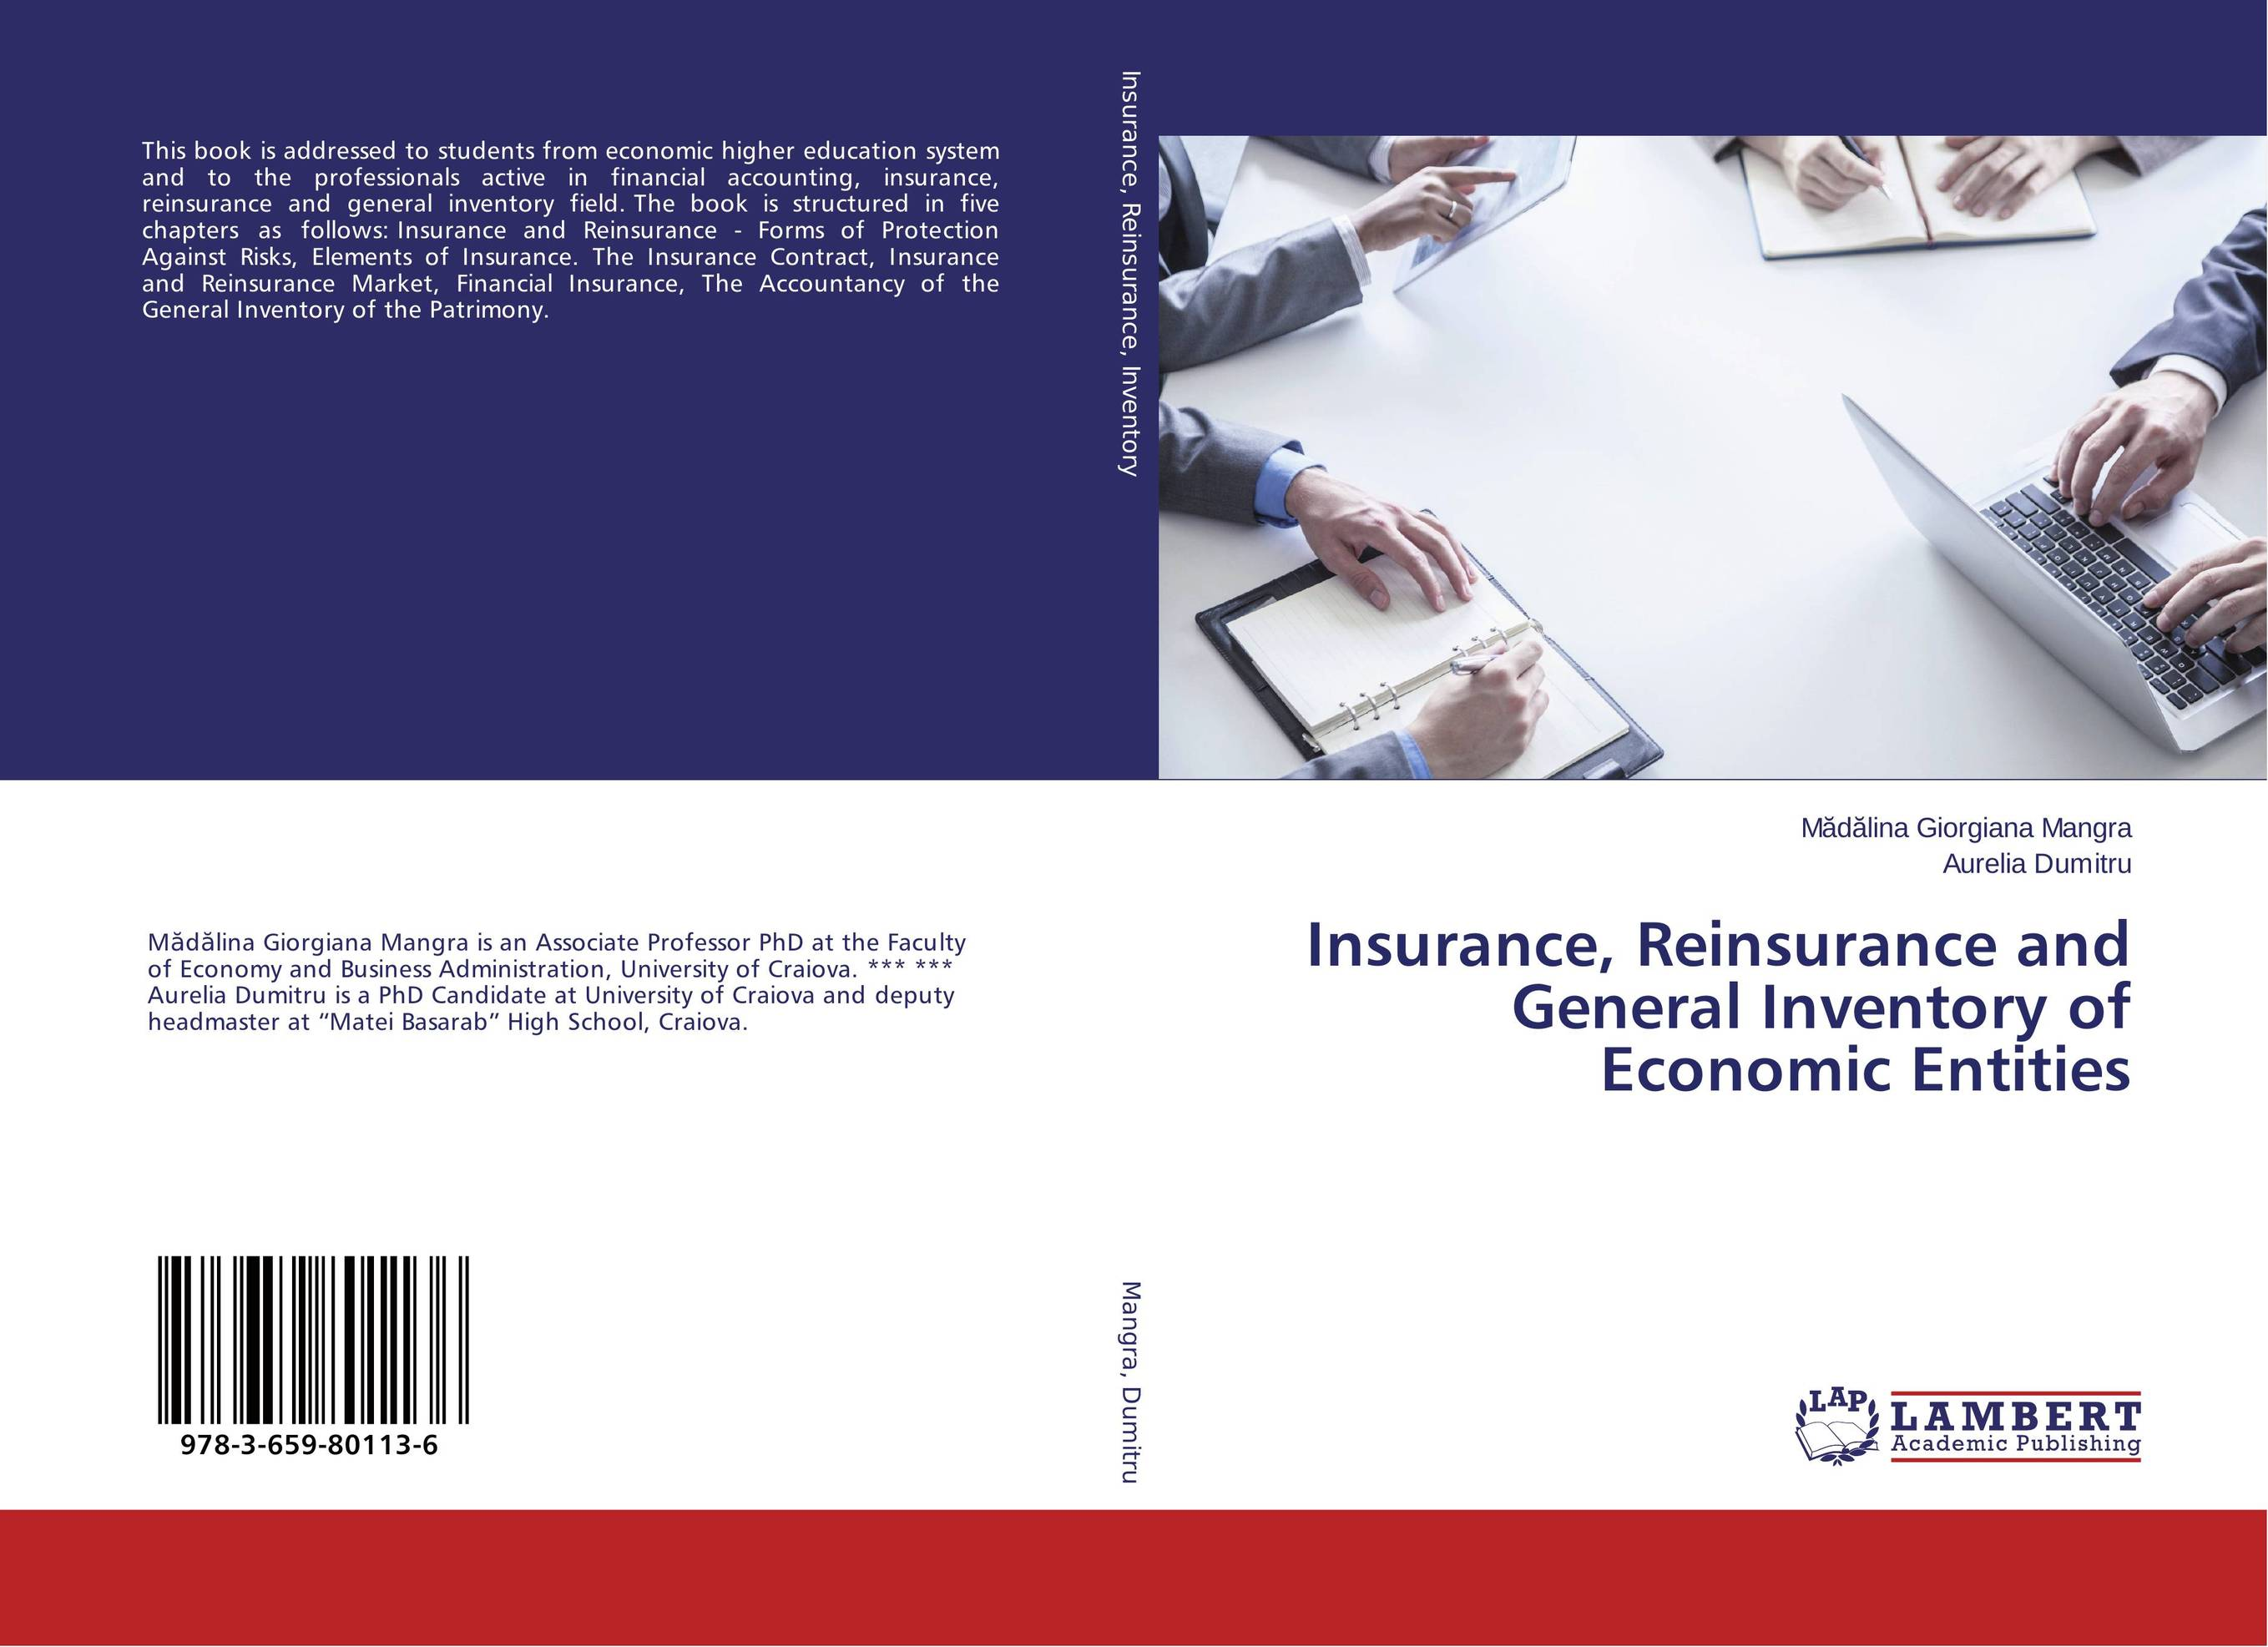 Insurance, Reinsurance and General Inventory of Economic Entities financial performance analysis of general insurance companies in india